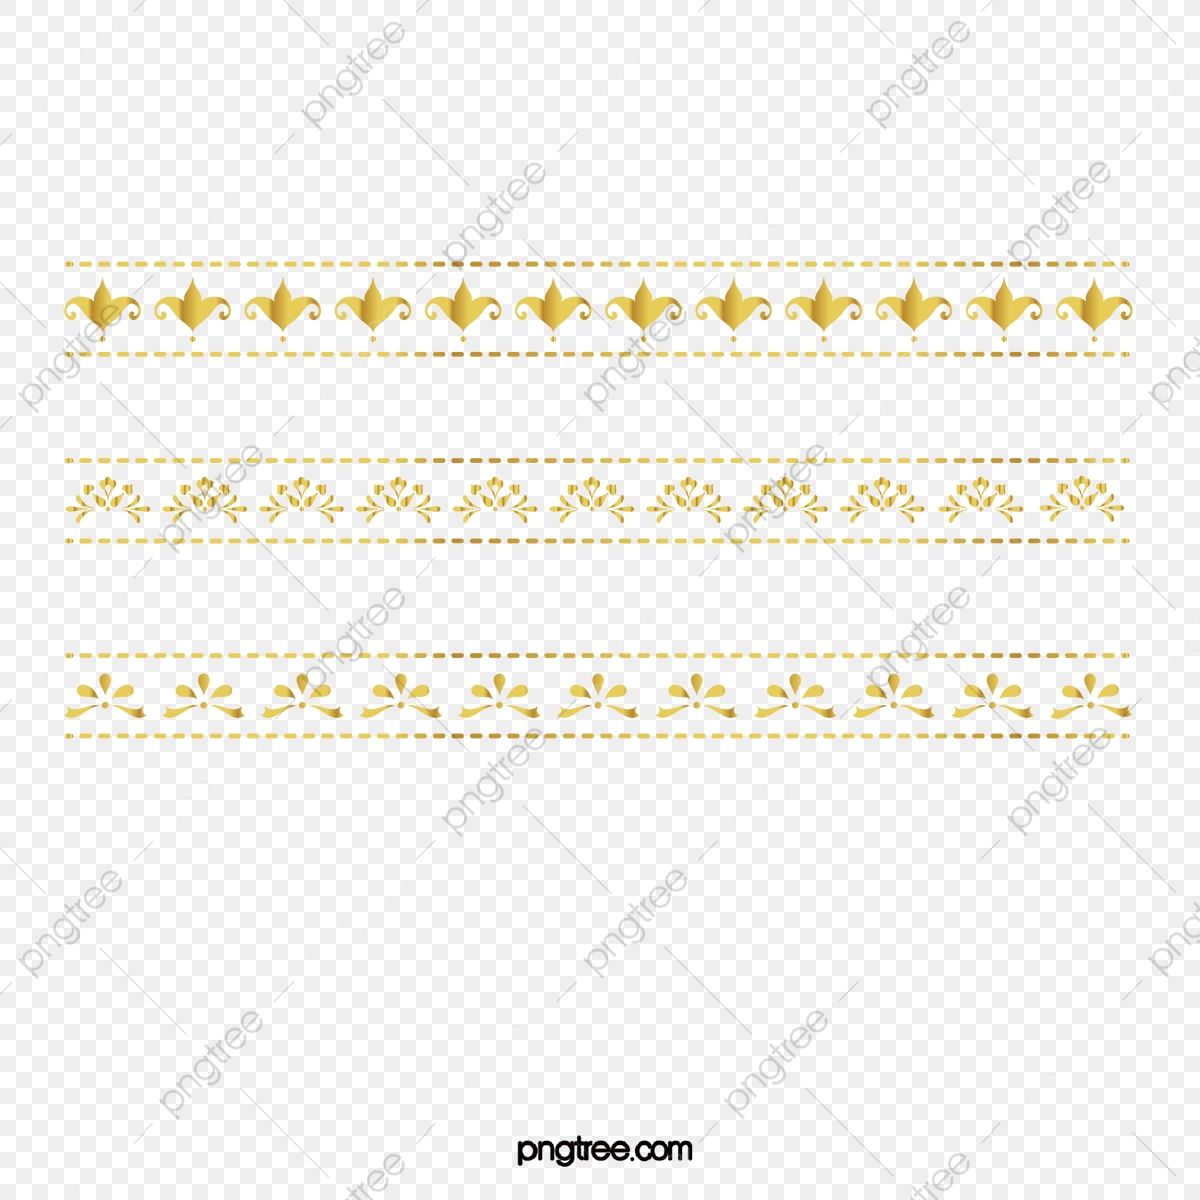 Gold Lace Ribbon Png - Delicate Gold Lace Border, Decorative Lace, Luxurious, Gold Ribbon ...